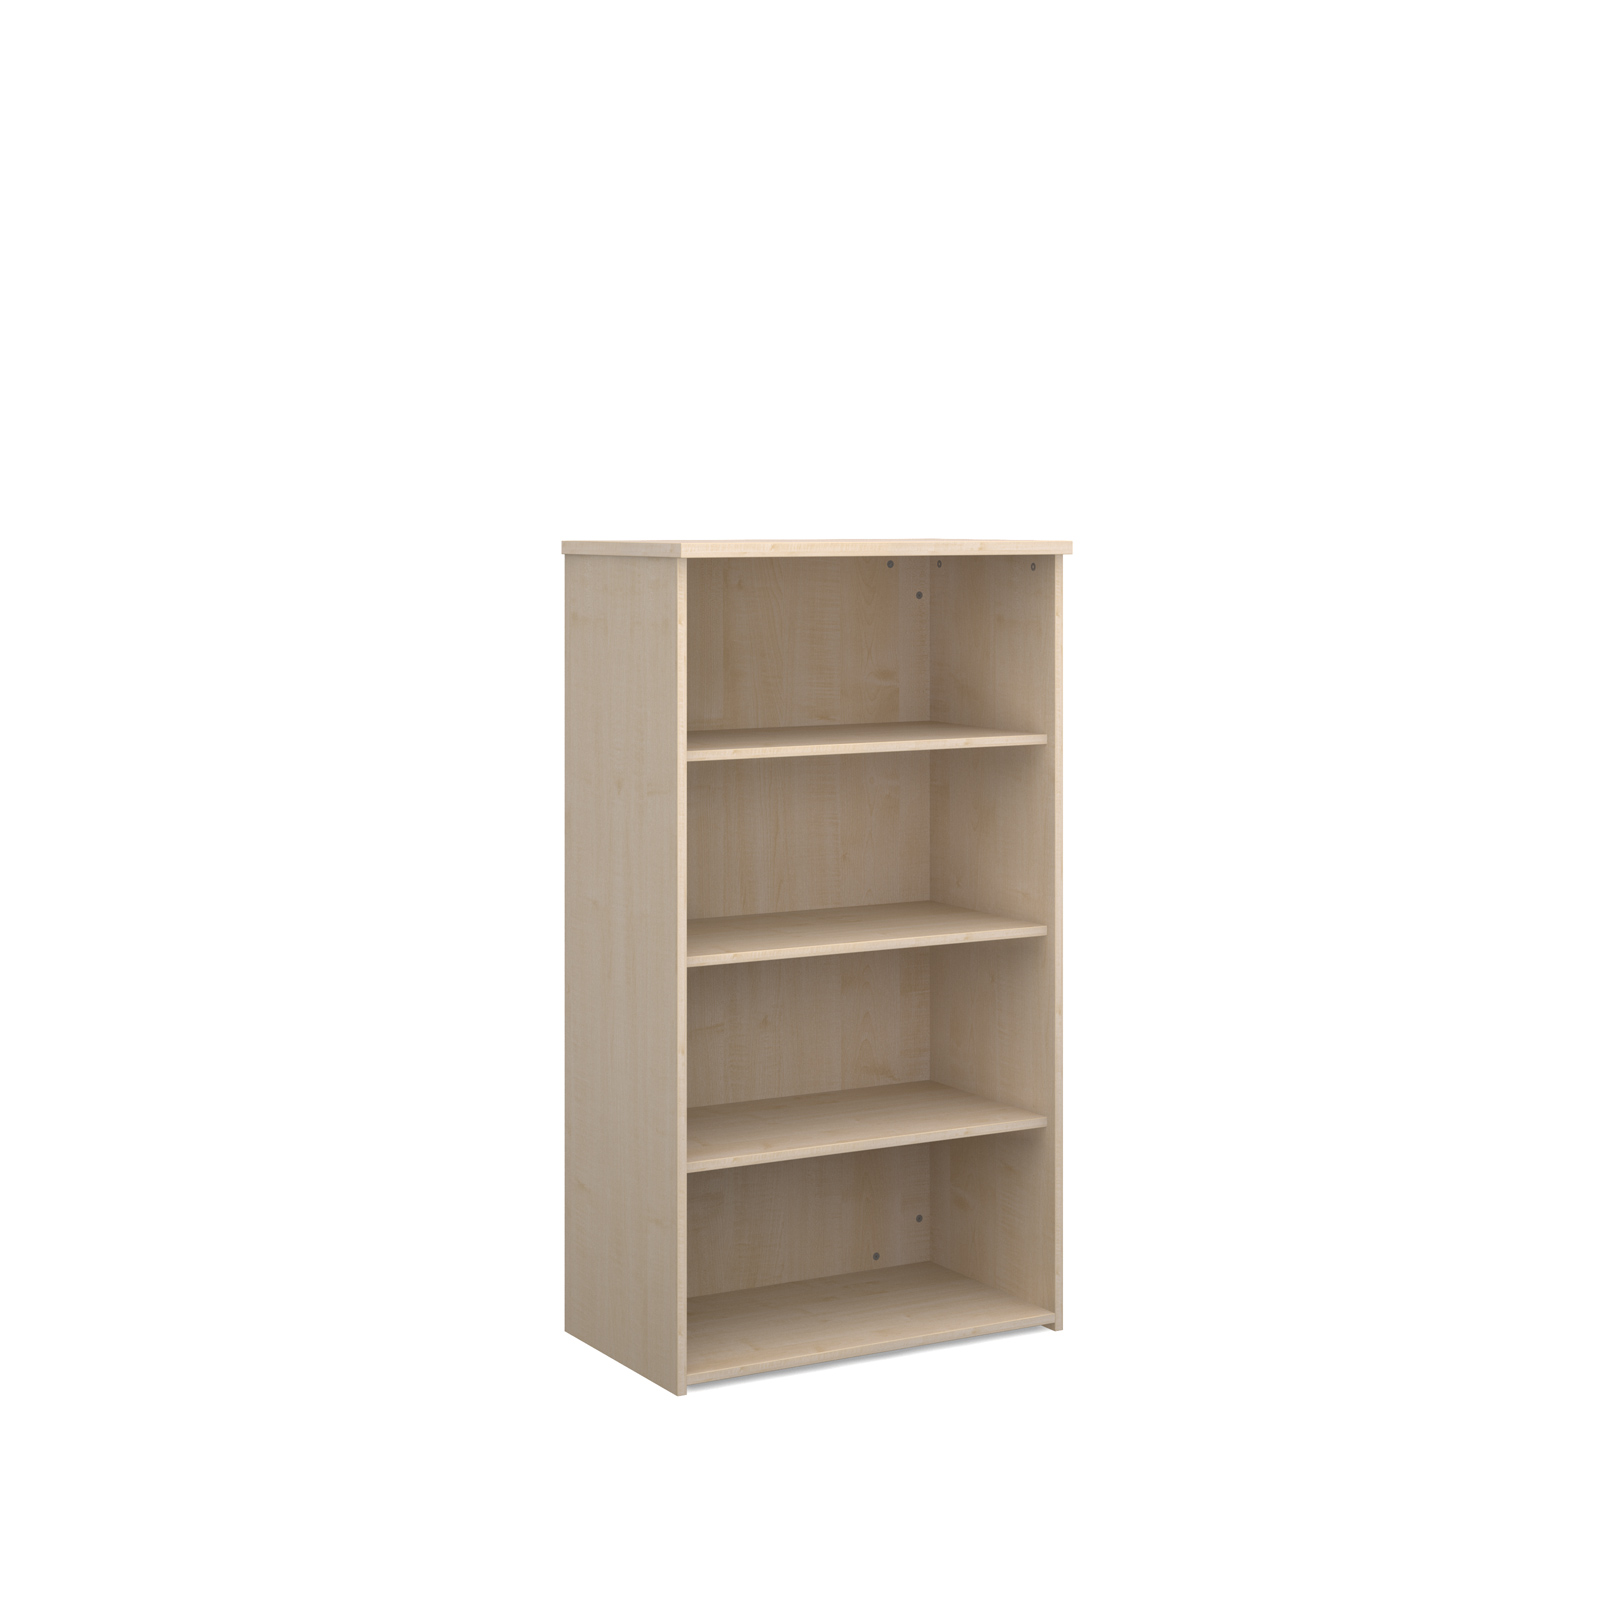 Image for Universal bookcase 1440mm high with 3 shelves - maple